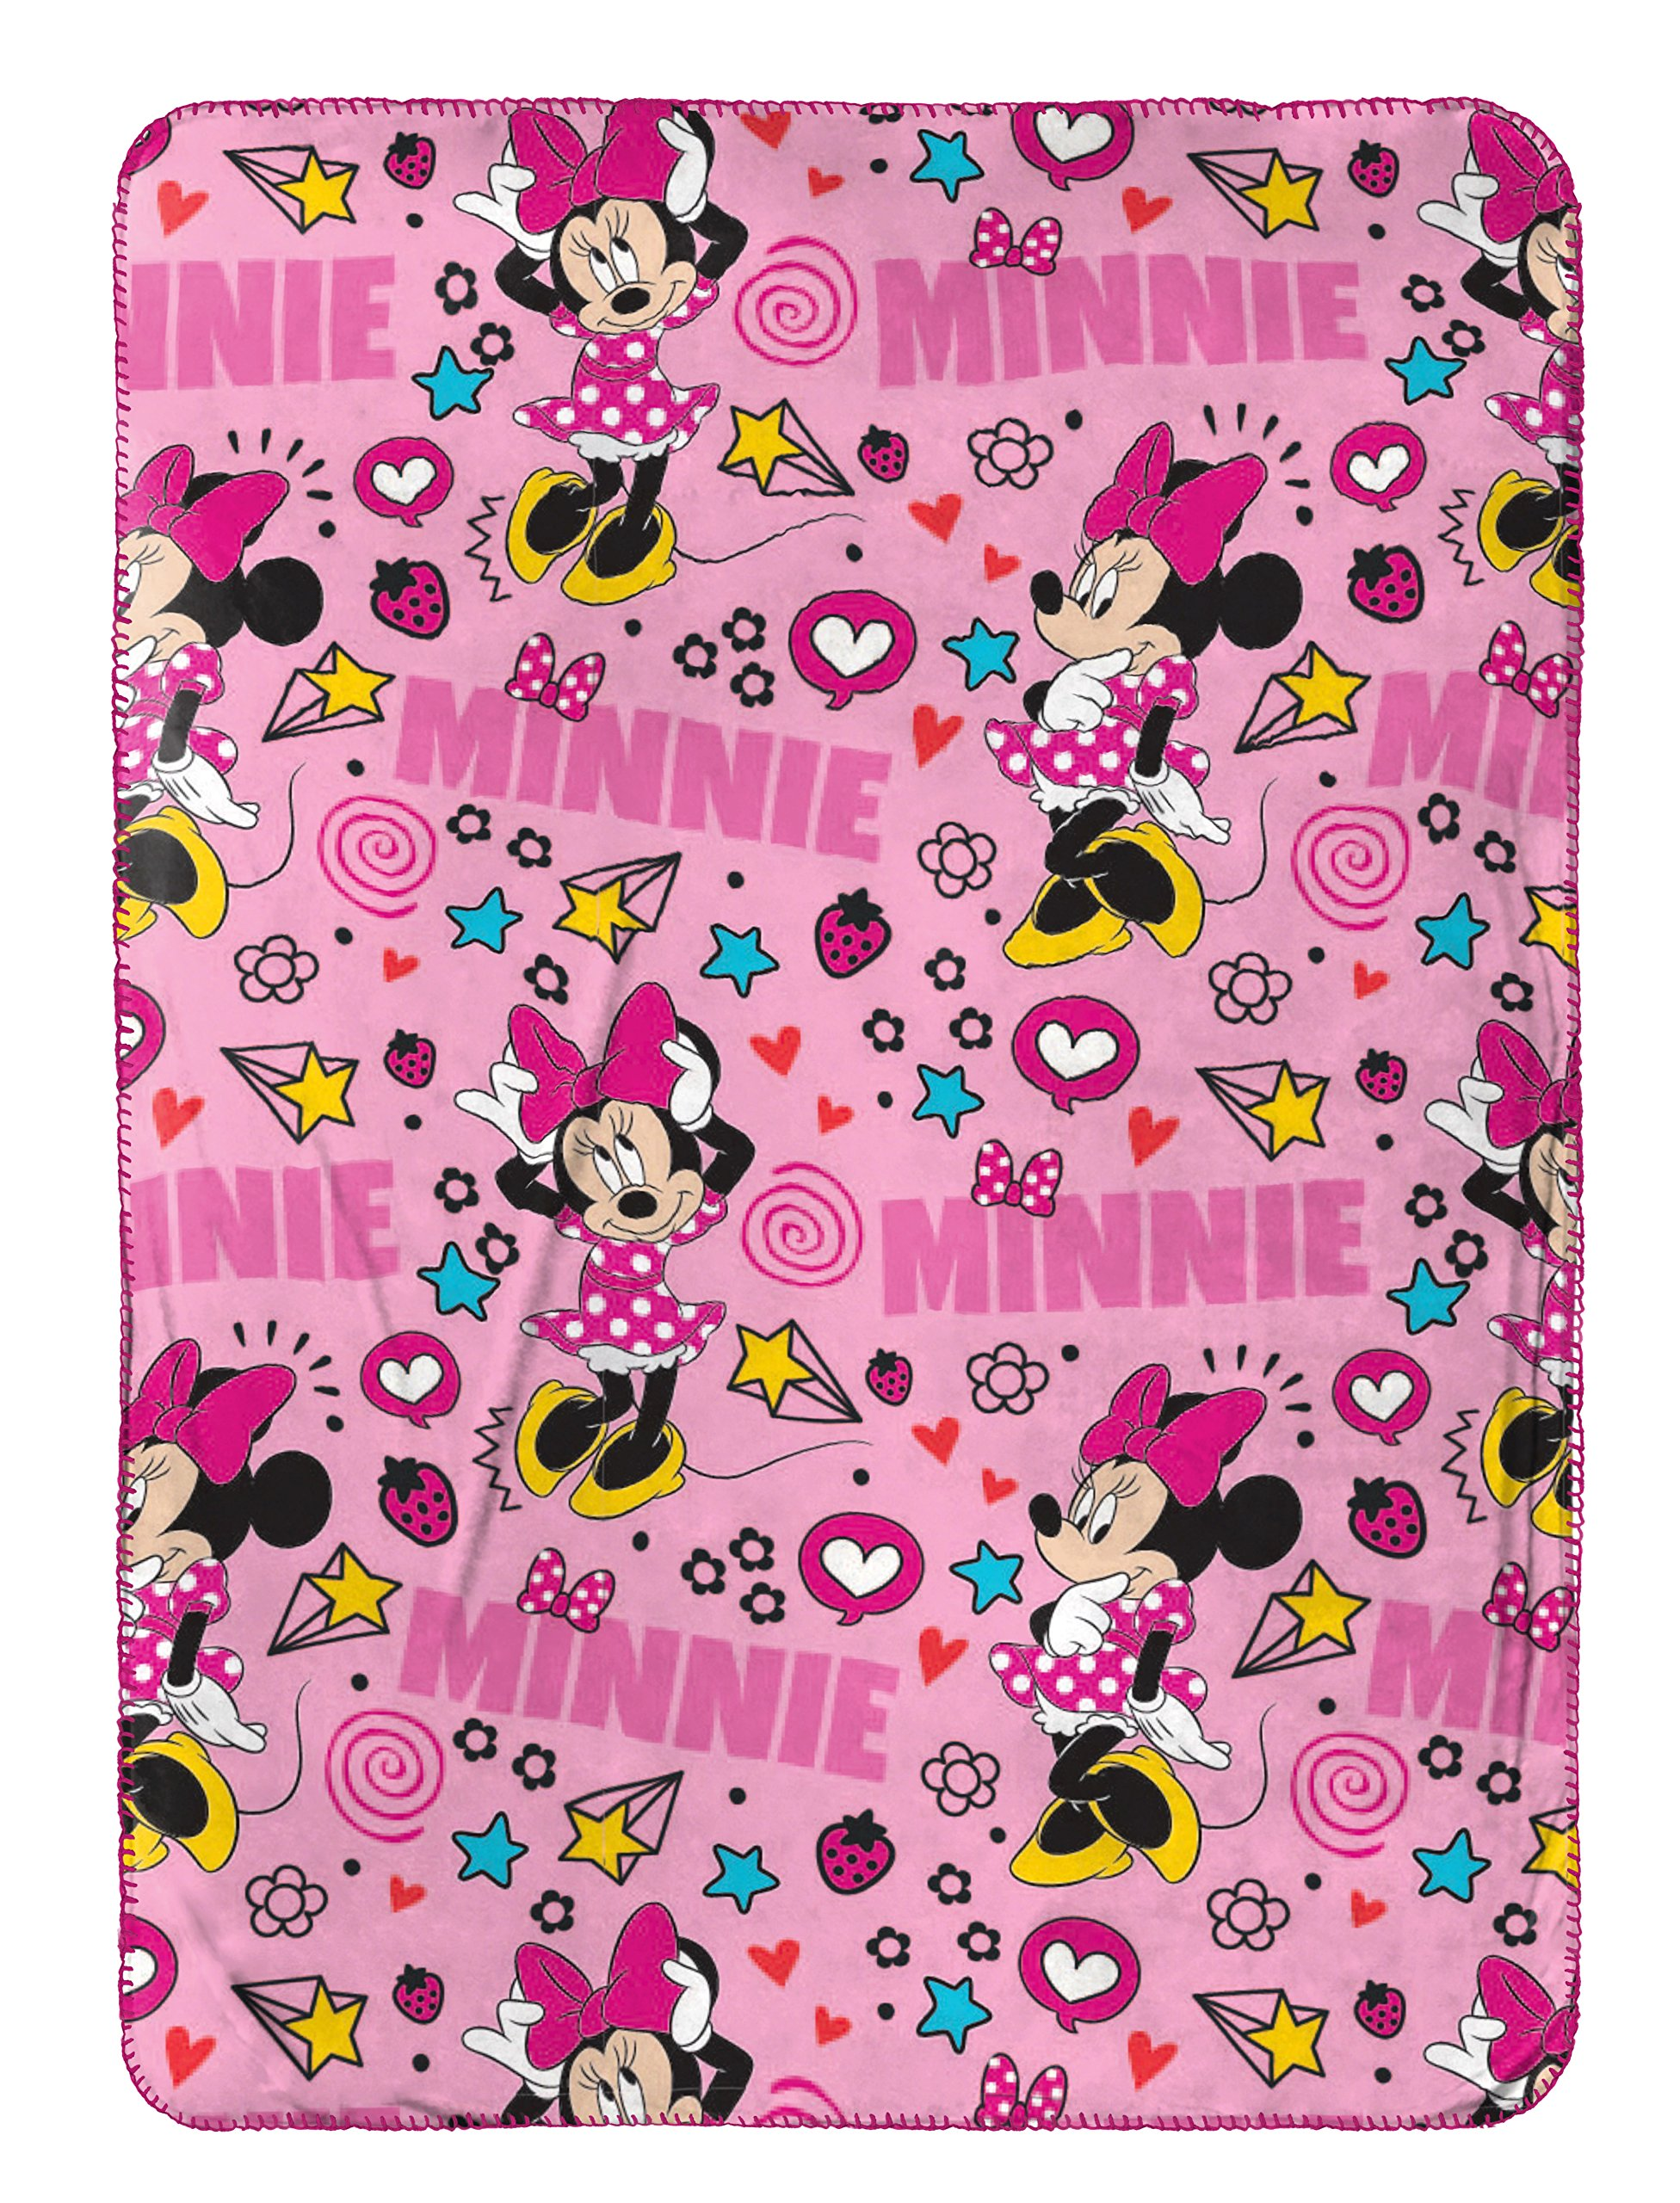 Disney Minnie Mouse Doodle Nogginz Pillow with 40'' x 50'' Travel Blanket Set by Disney (Image #2)